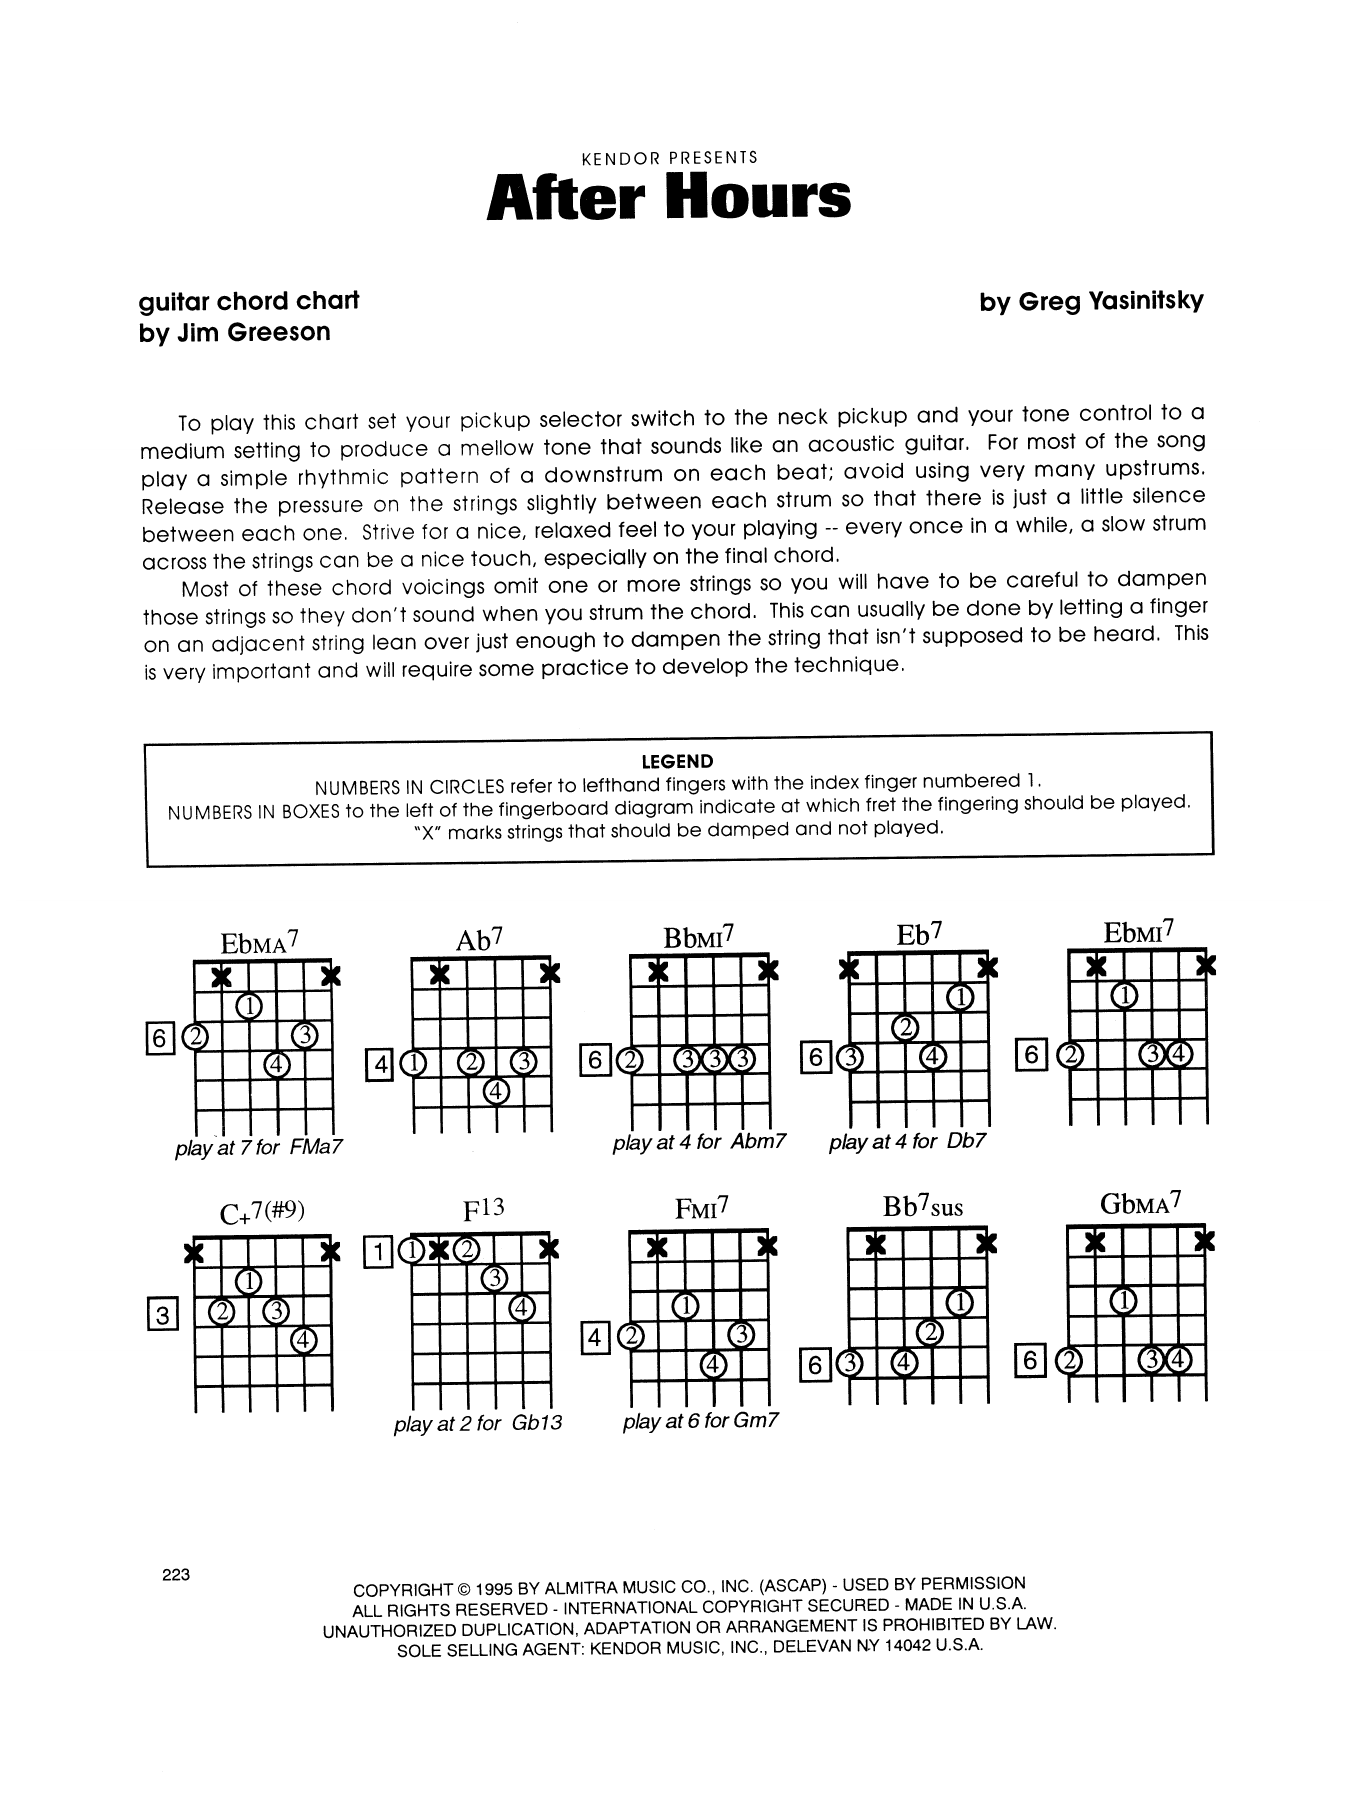 Gregory Yasinitsky After Hours - Guitar Chord Chart sheet music notes printable PDF score